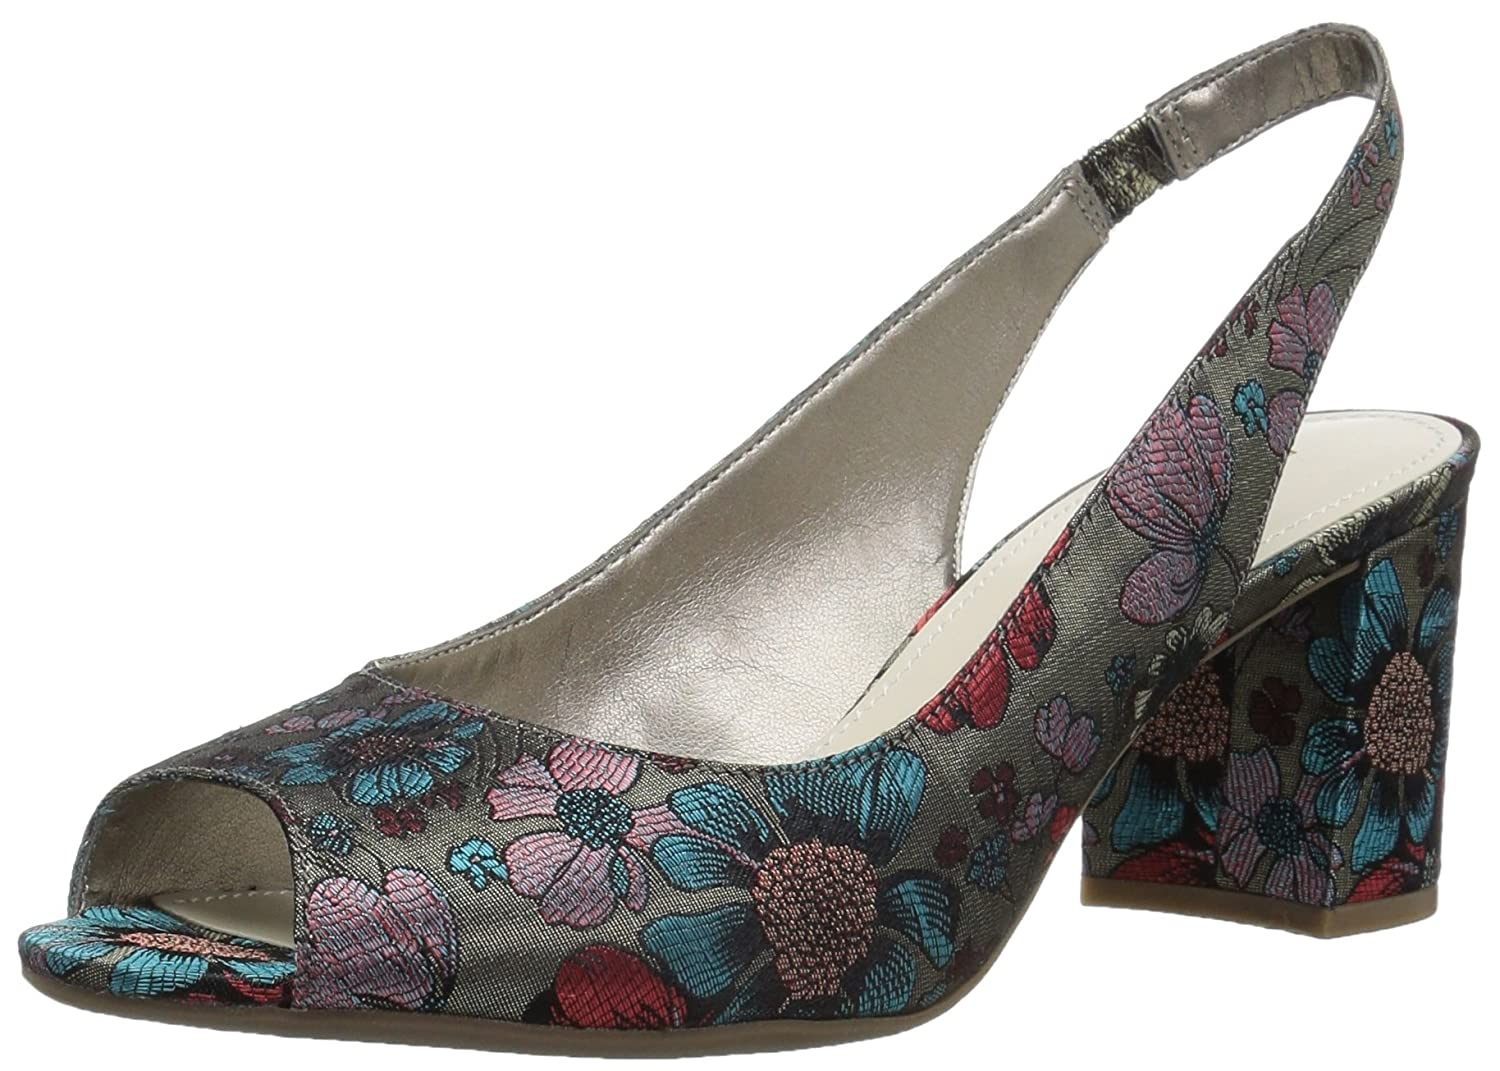 Anne Klein Women's Maurise Peep Toe Sling-Back Pump B07BL5VK15 5.5 M US|Taupe/Turquoise/Red Fabric